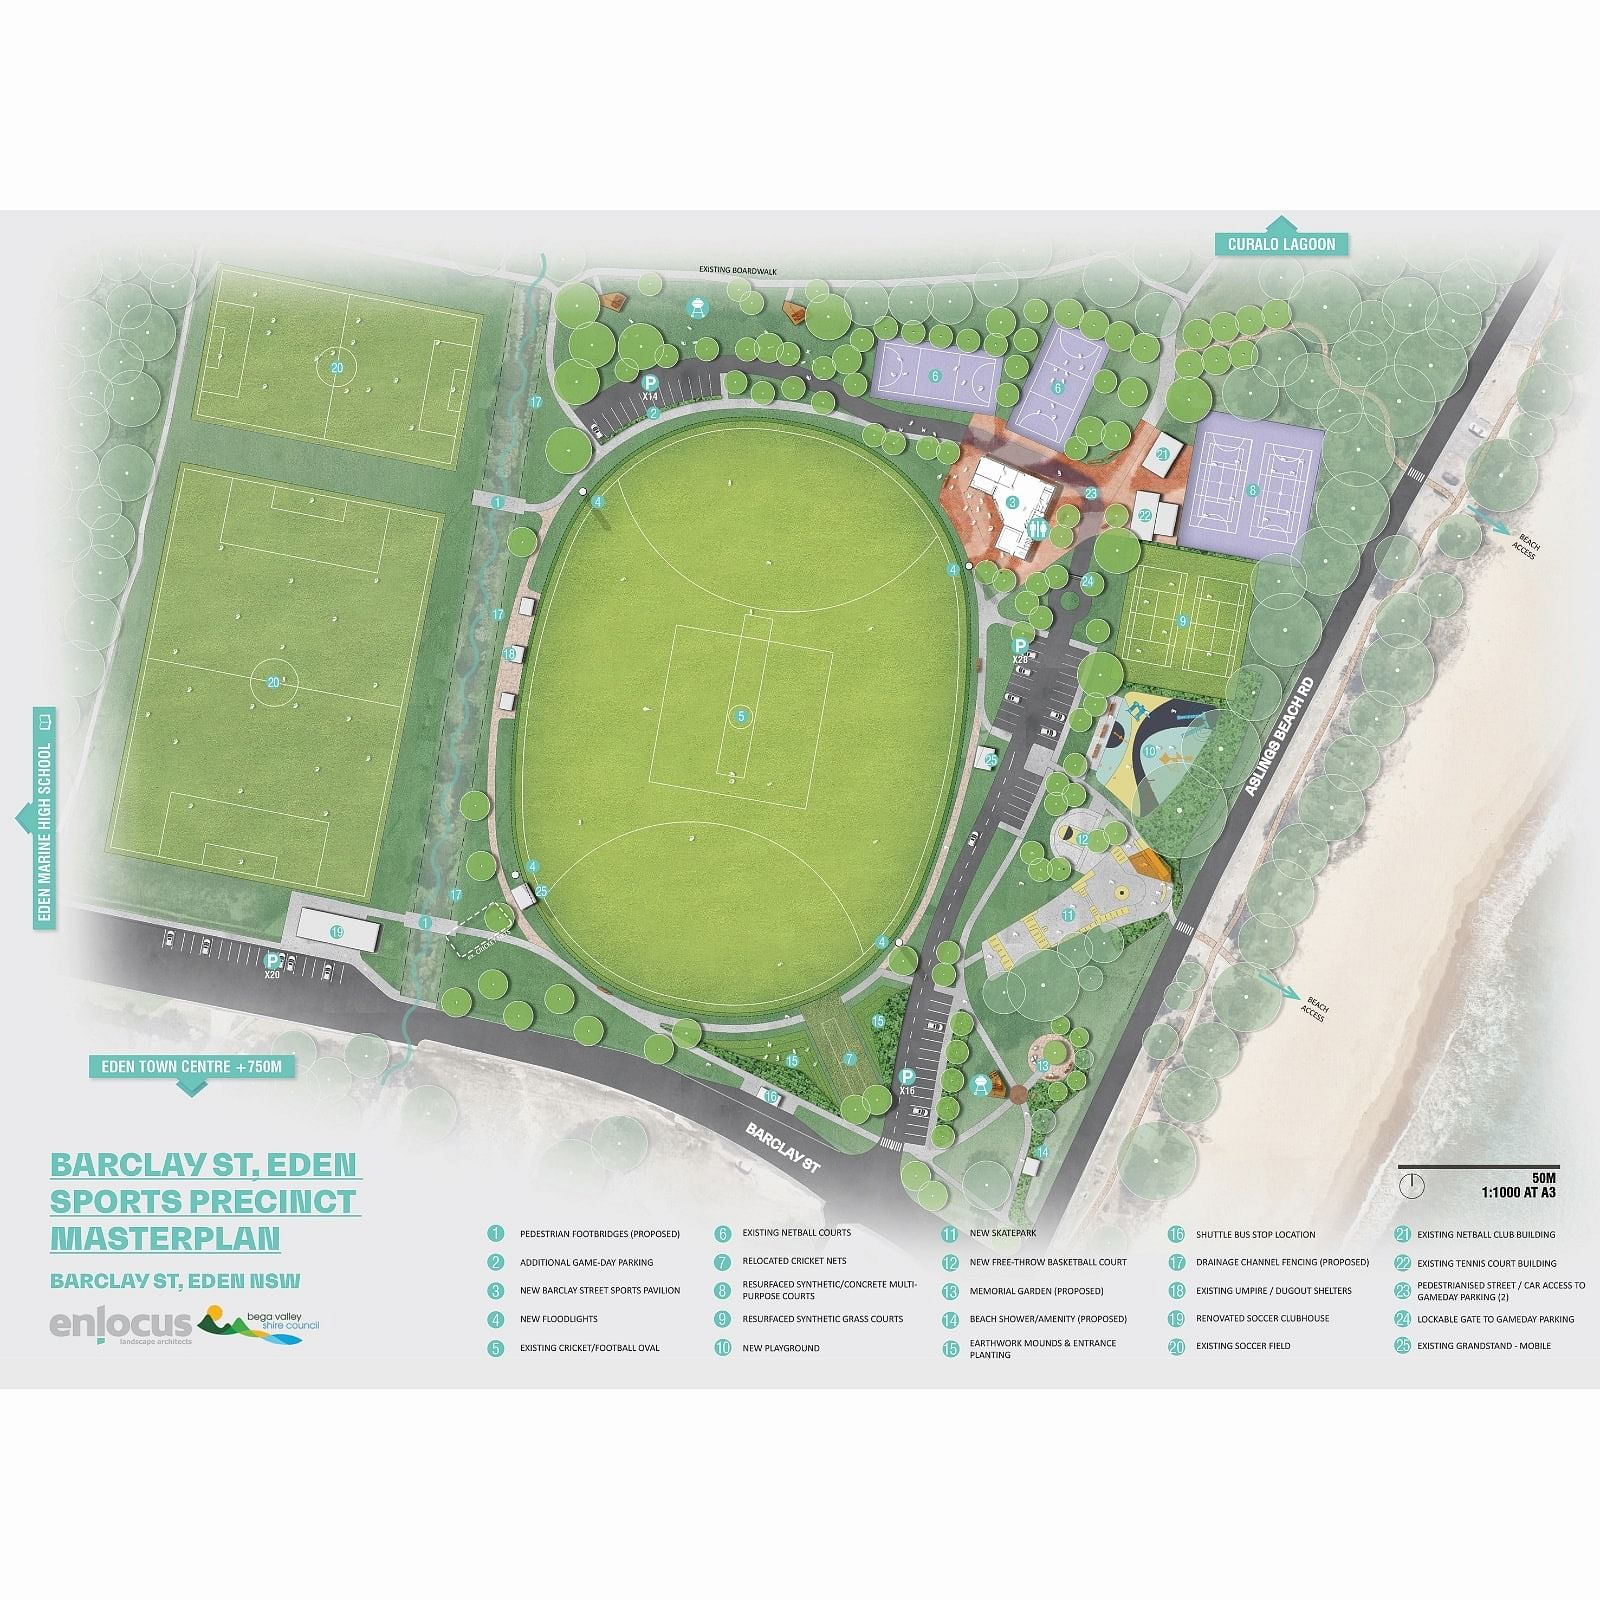 A masterplan for the Barclay Street sporting precinct in Eden has been endorsed by Council.